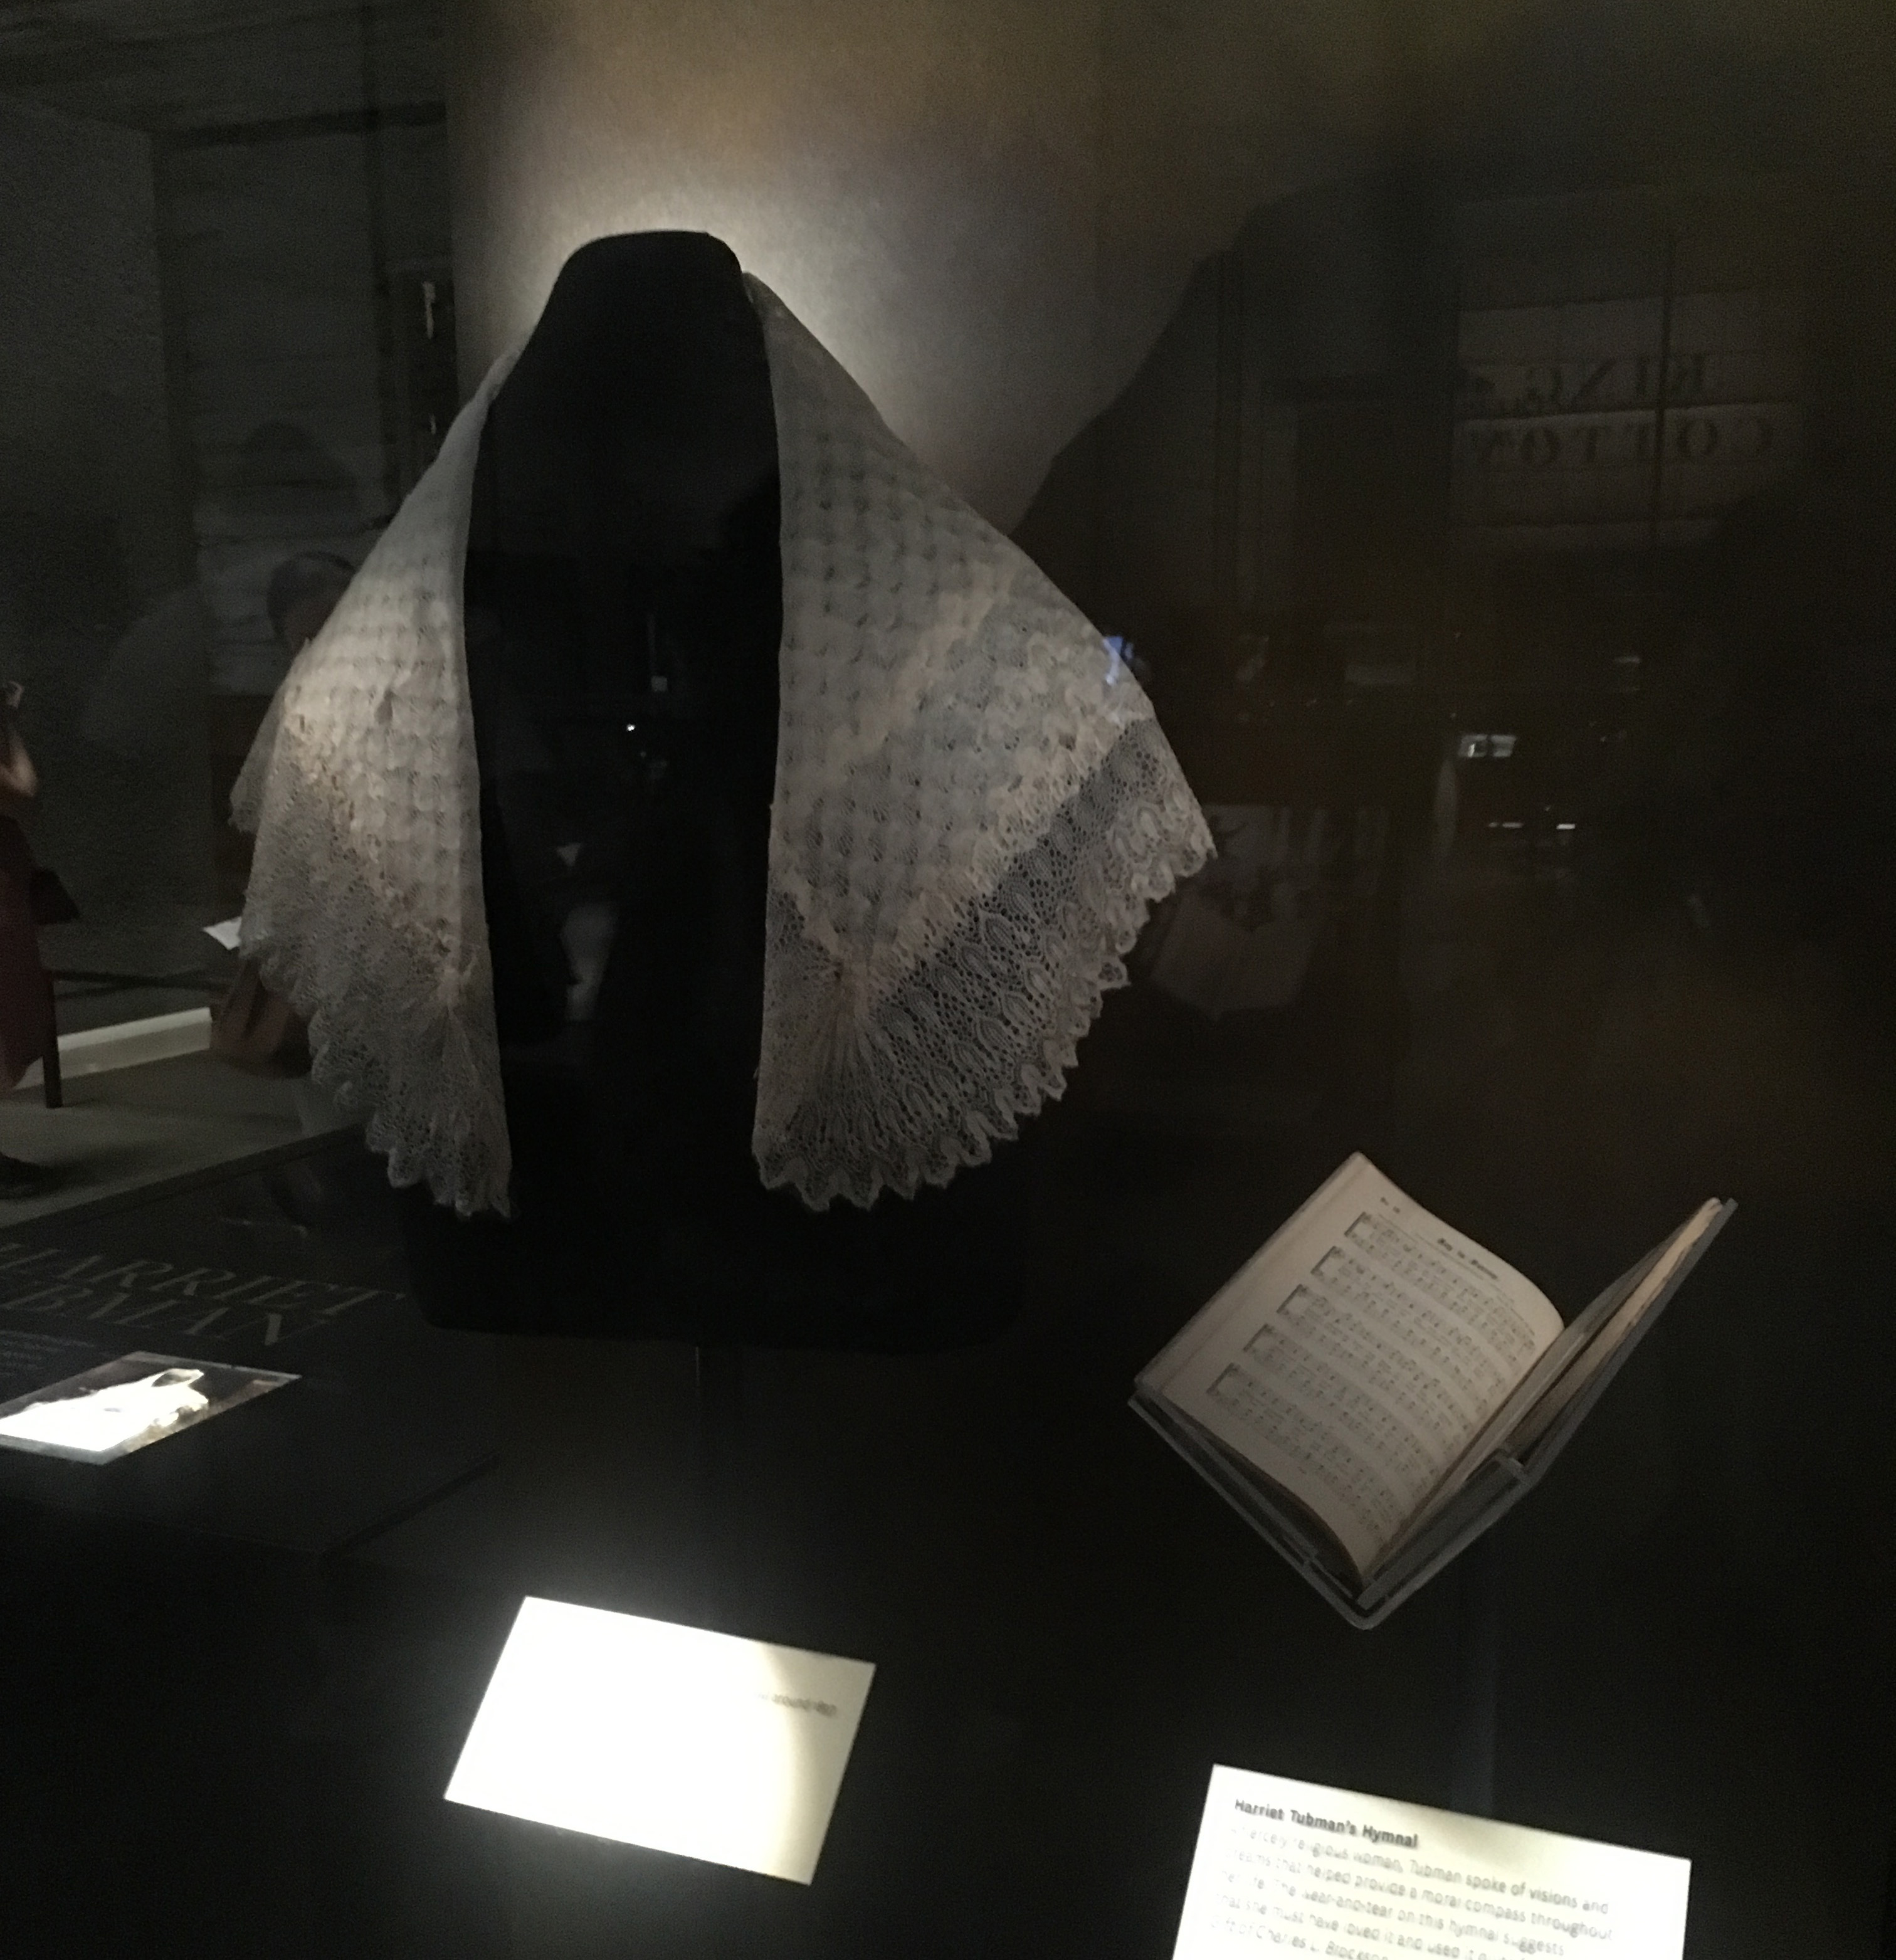 Shawl and hymnal in display case